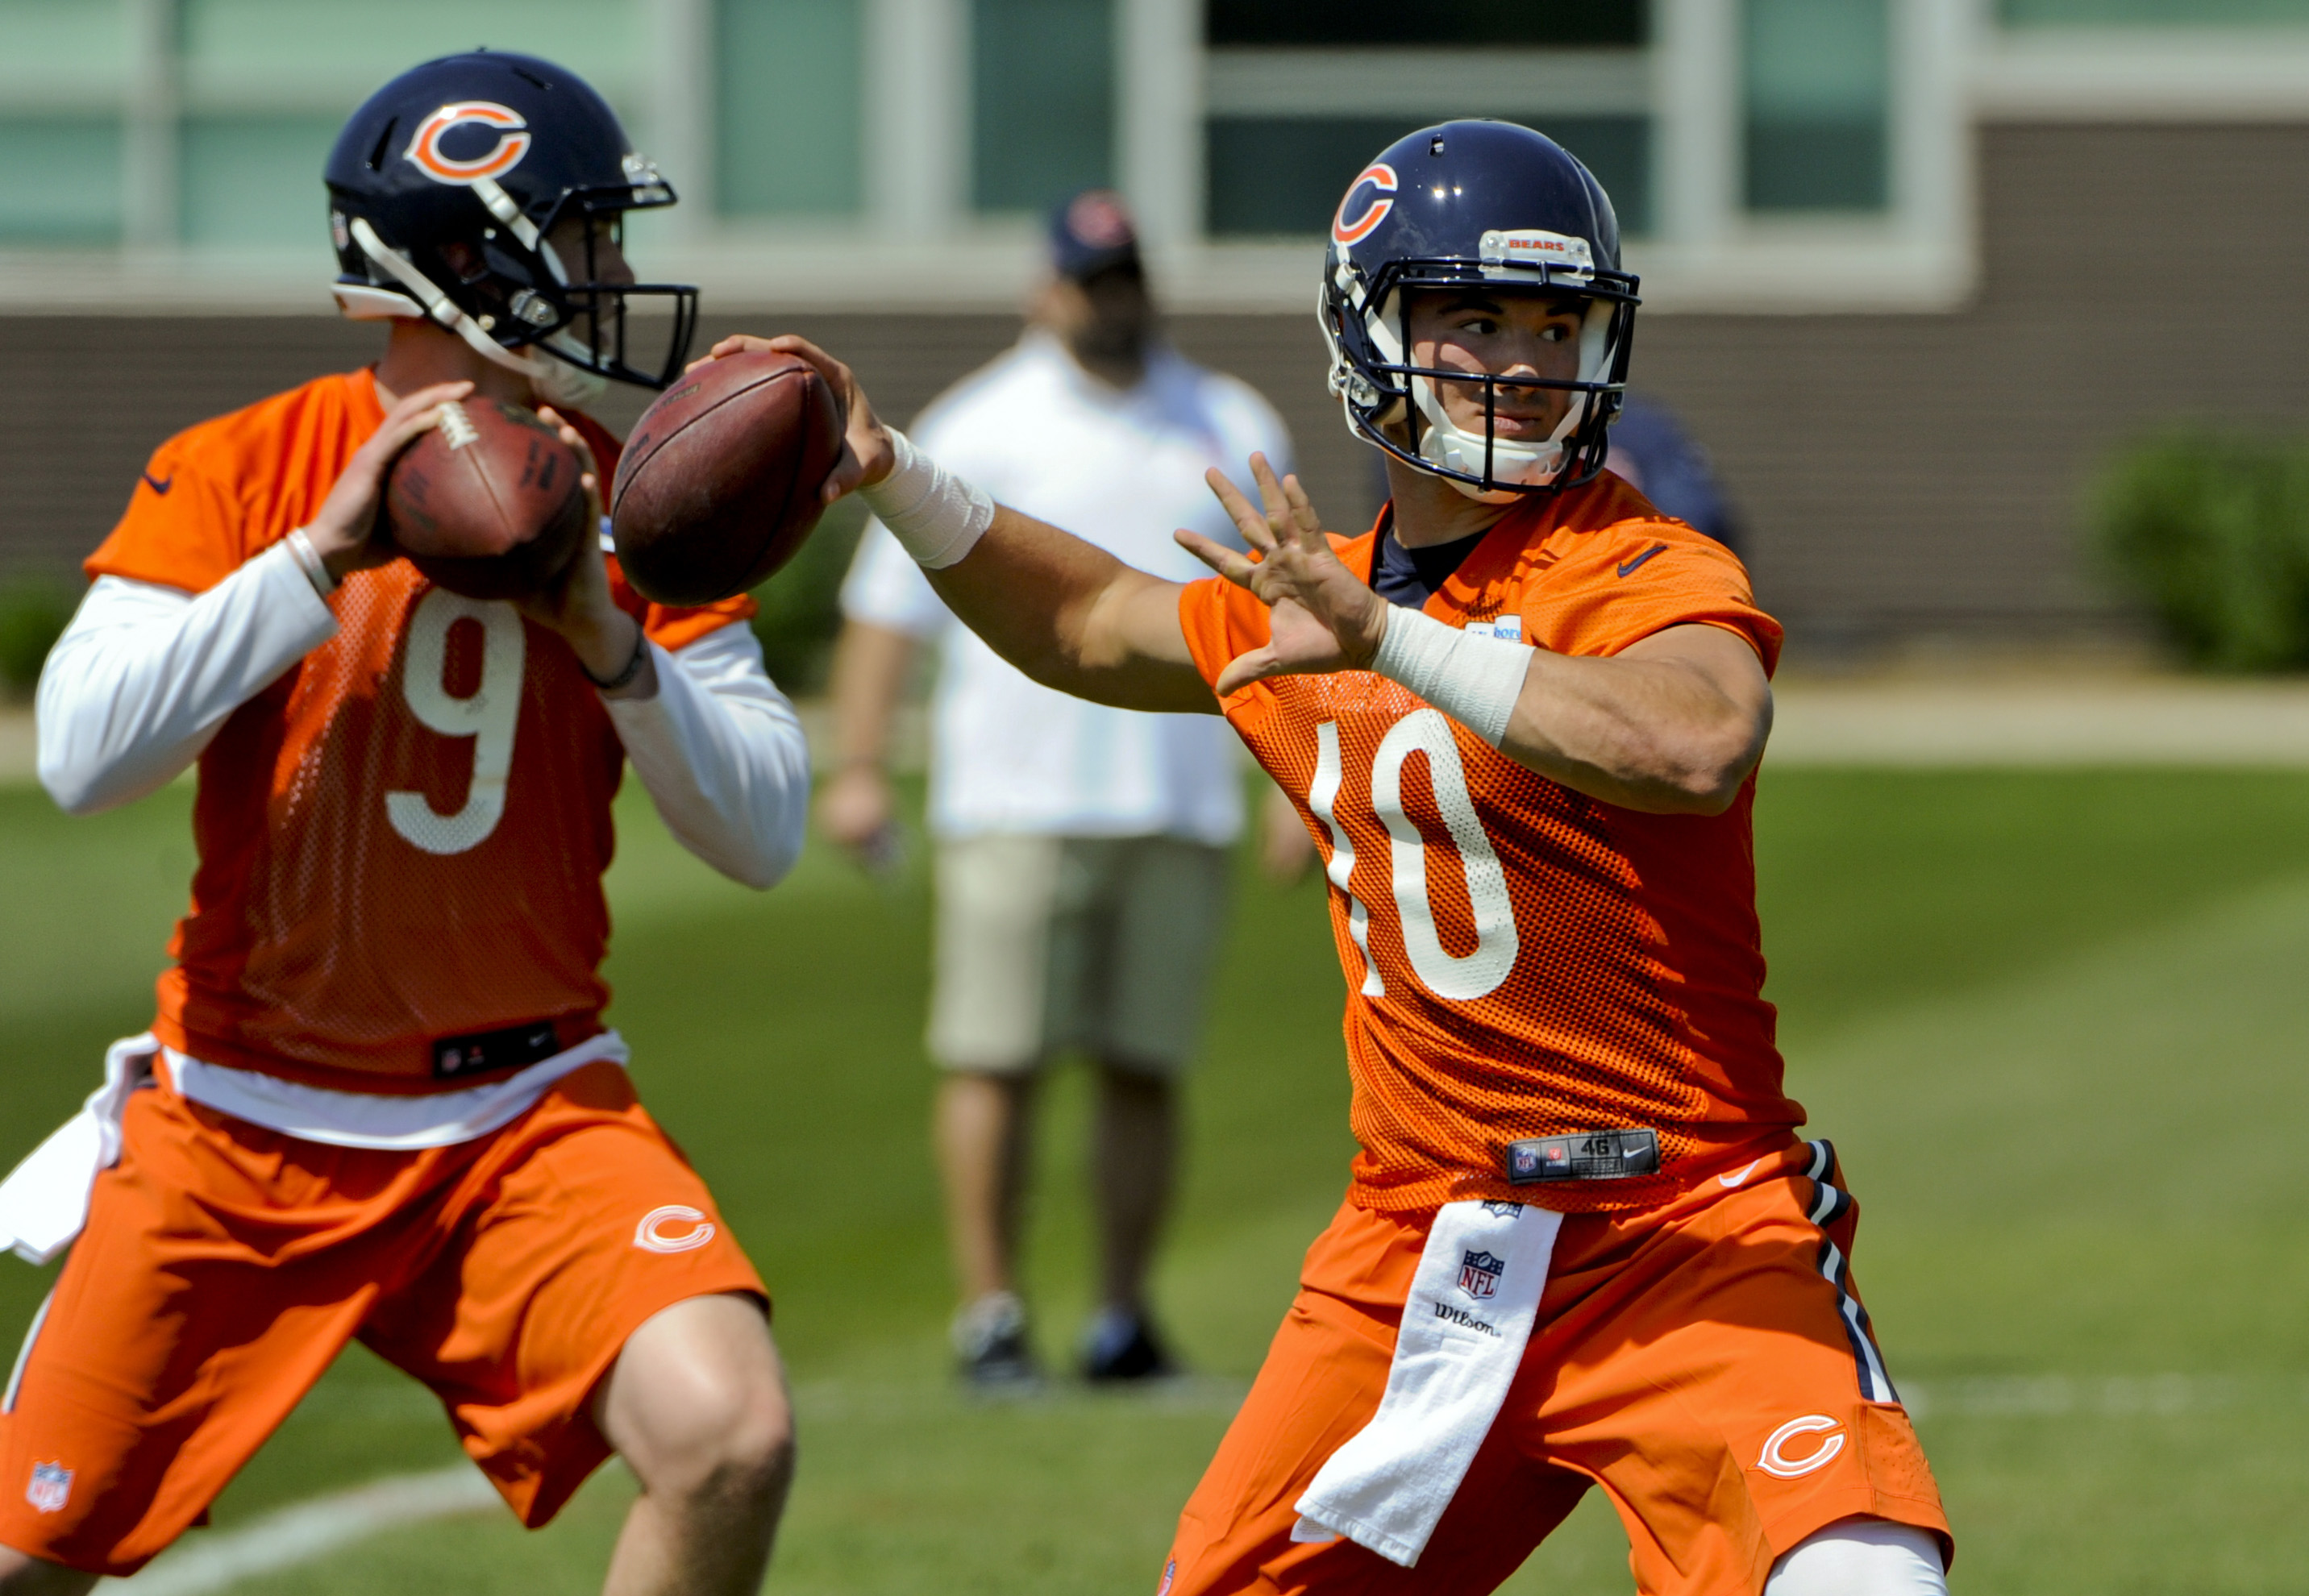 10053260-nfl-chicago-bears-rookie-minicamp